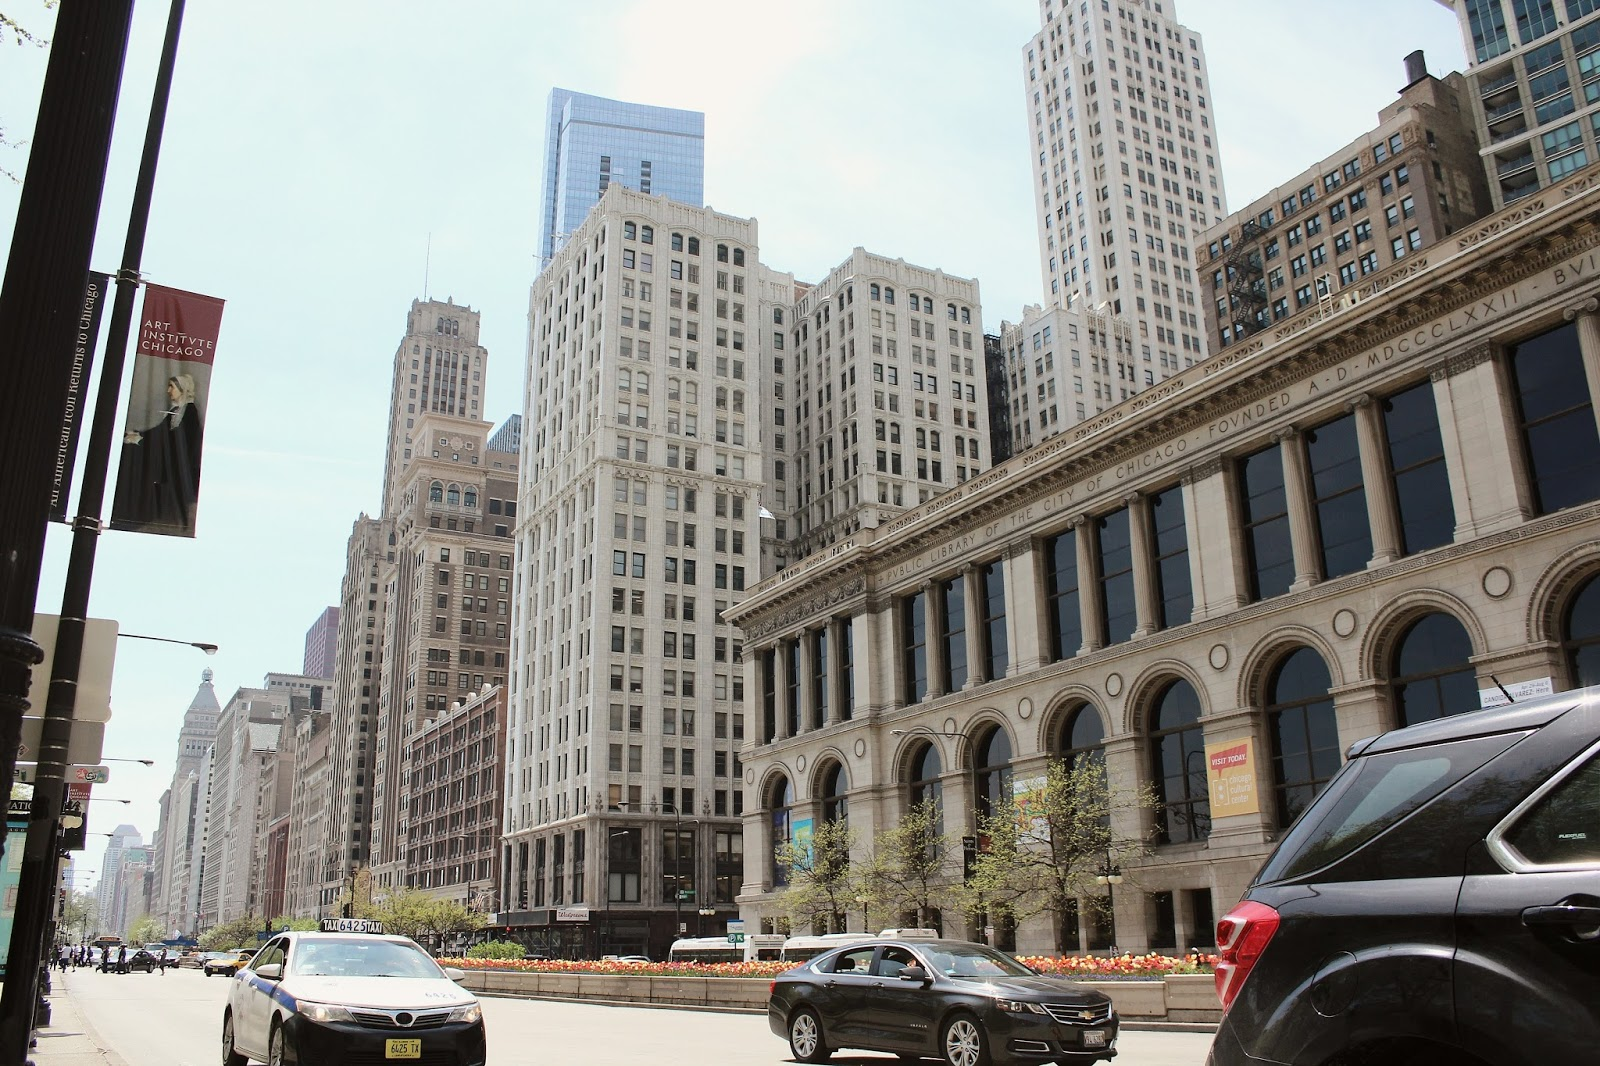 things to do in chicago, travel blogger, magnificent mile, windy city, DC blogger, saumya shiohare, myriad musings, lifestyle